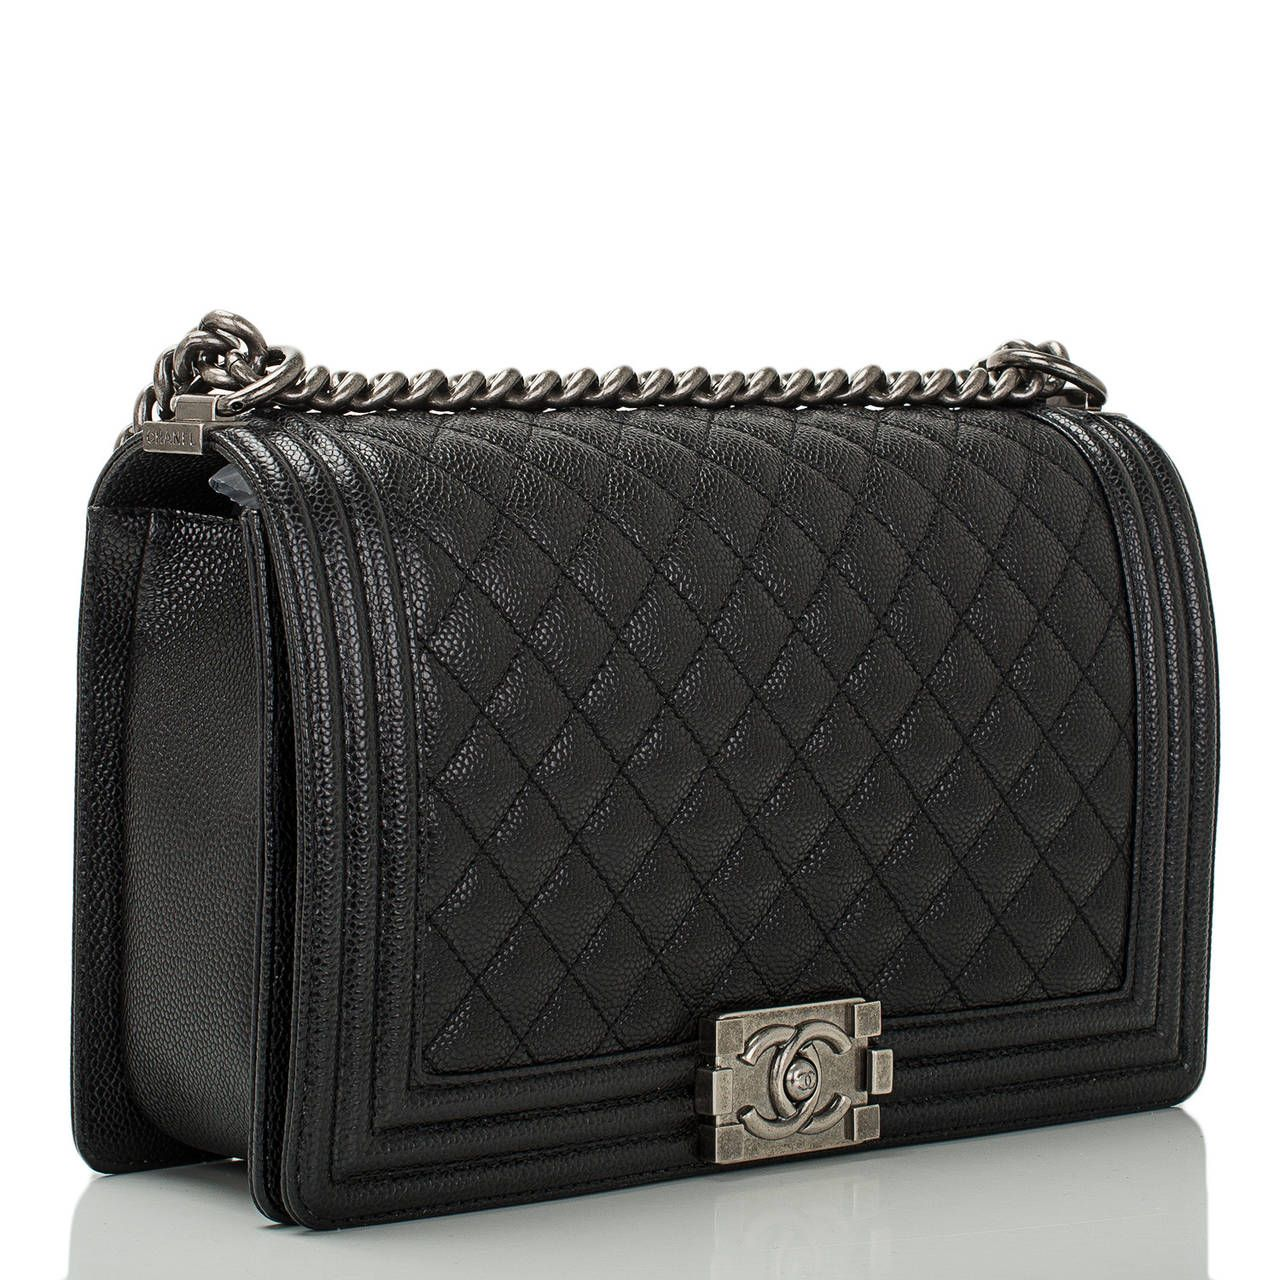 725cae3c96cd On the waitlist, coming soon. Yay! Chanel Quilted Boy Bag New Medium in  Black Caviar with Ruthenium Hardware